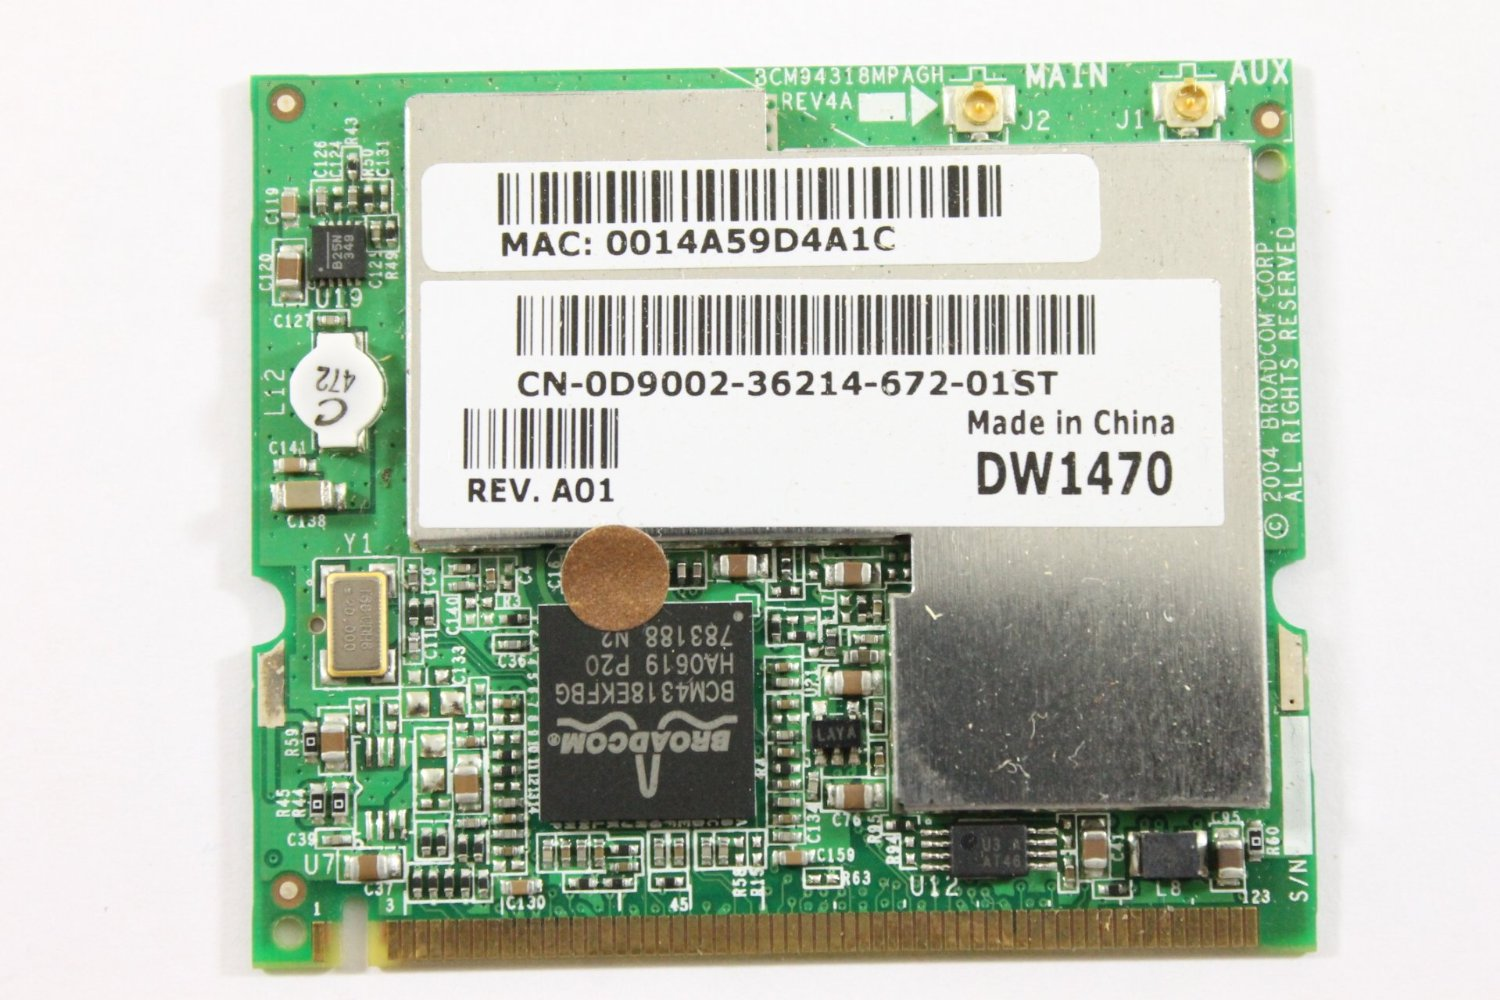 Dell Latitude D810 Wireless (Japan) WLAN Card Driver for Windows 10